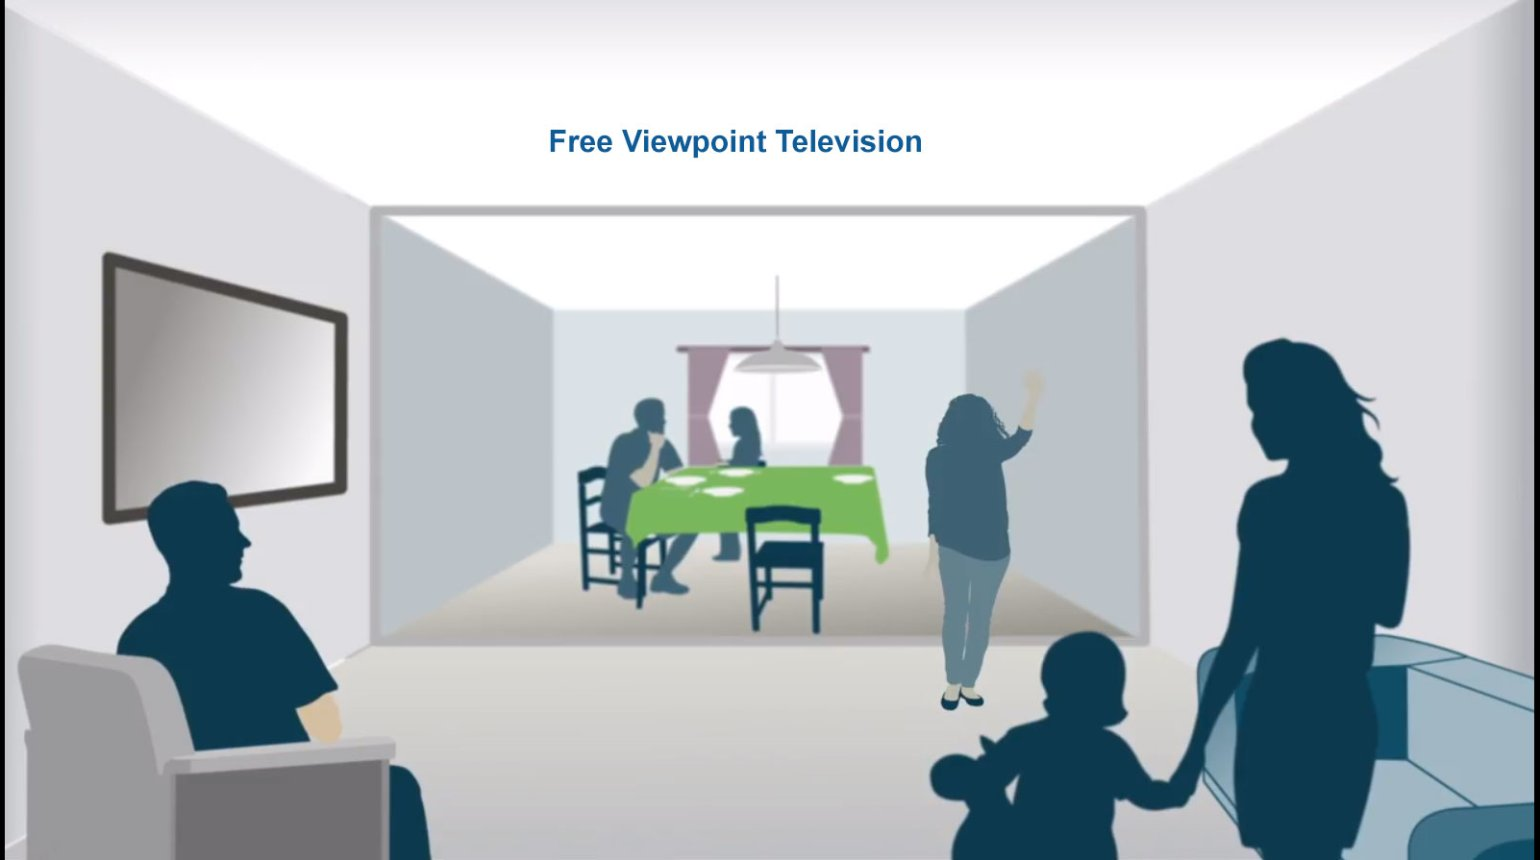 SPS Video: Free Viewpoint Television